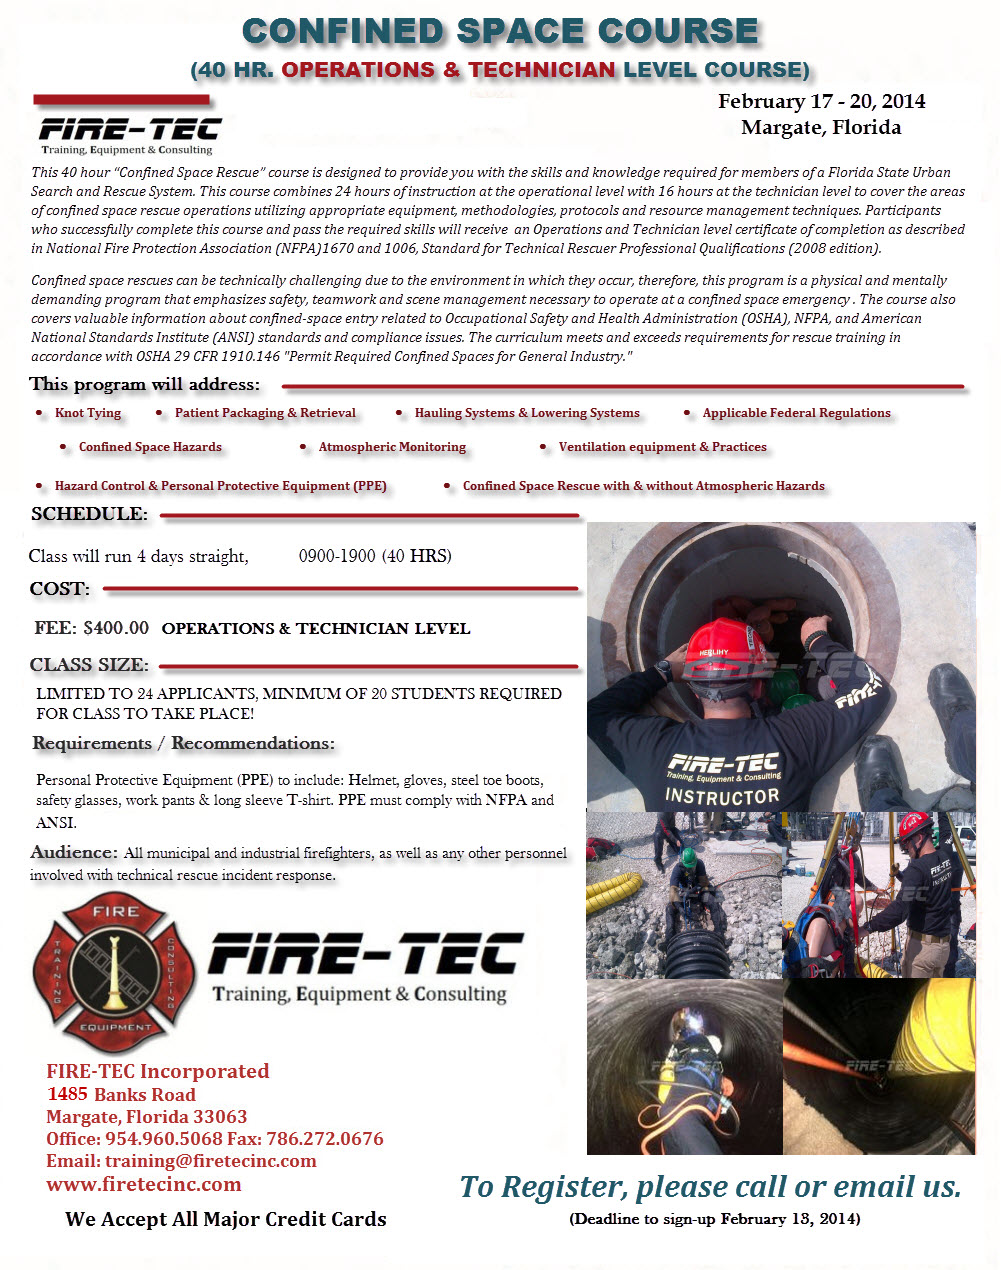 CONFINED SPACE RESCUE – Fire Tec Inc